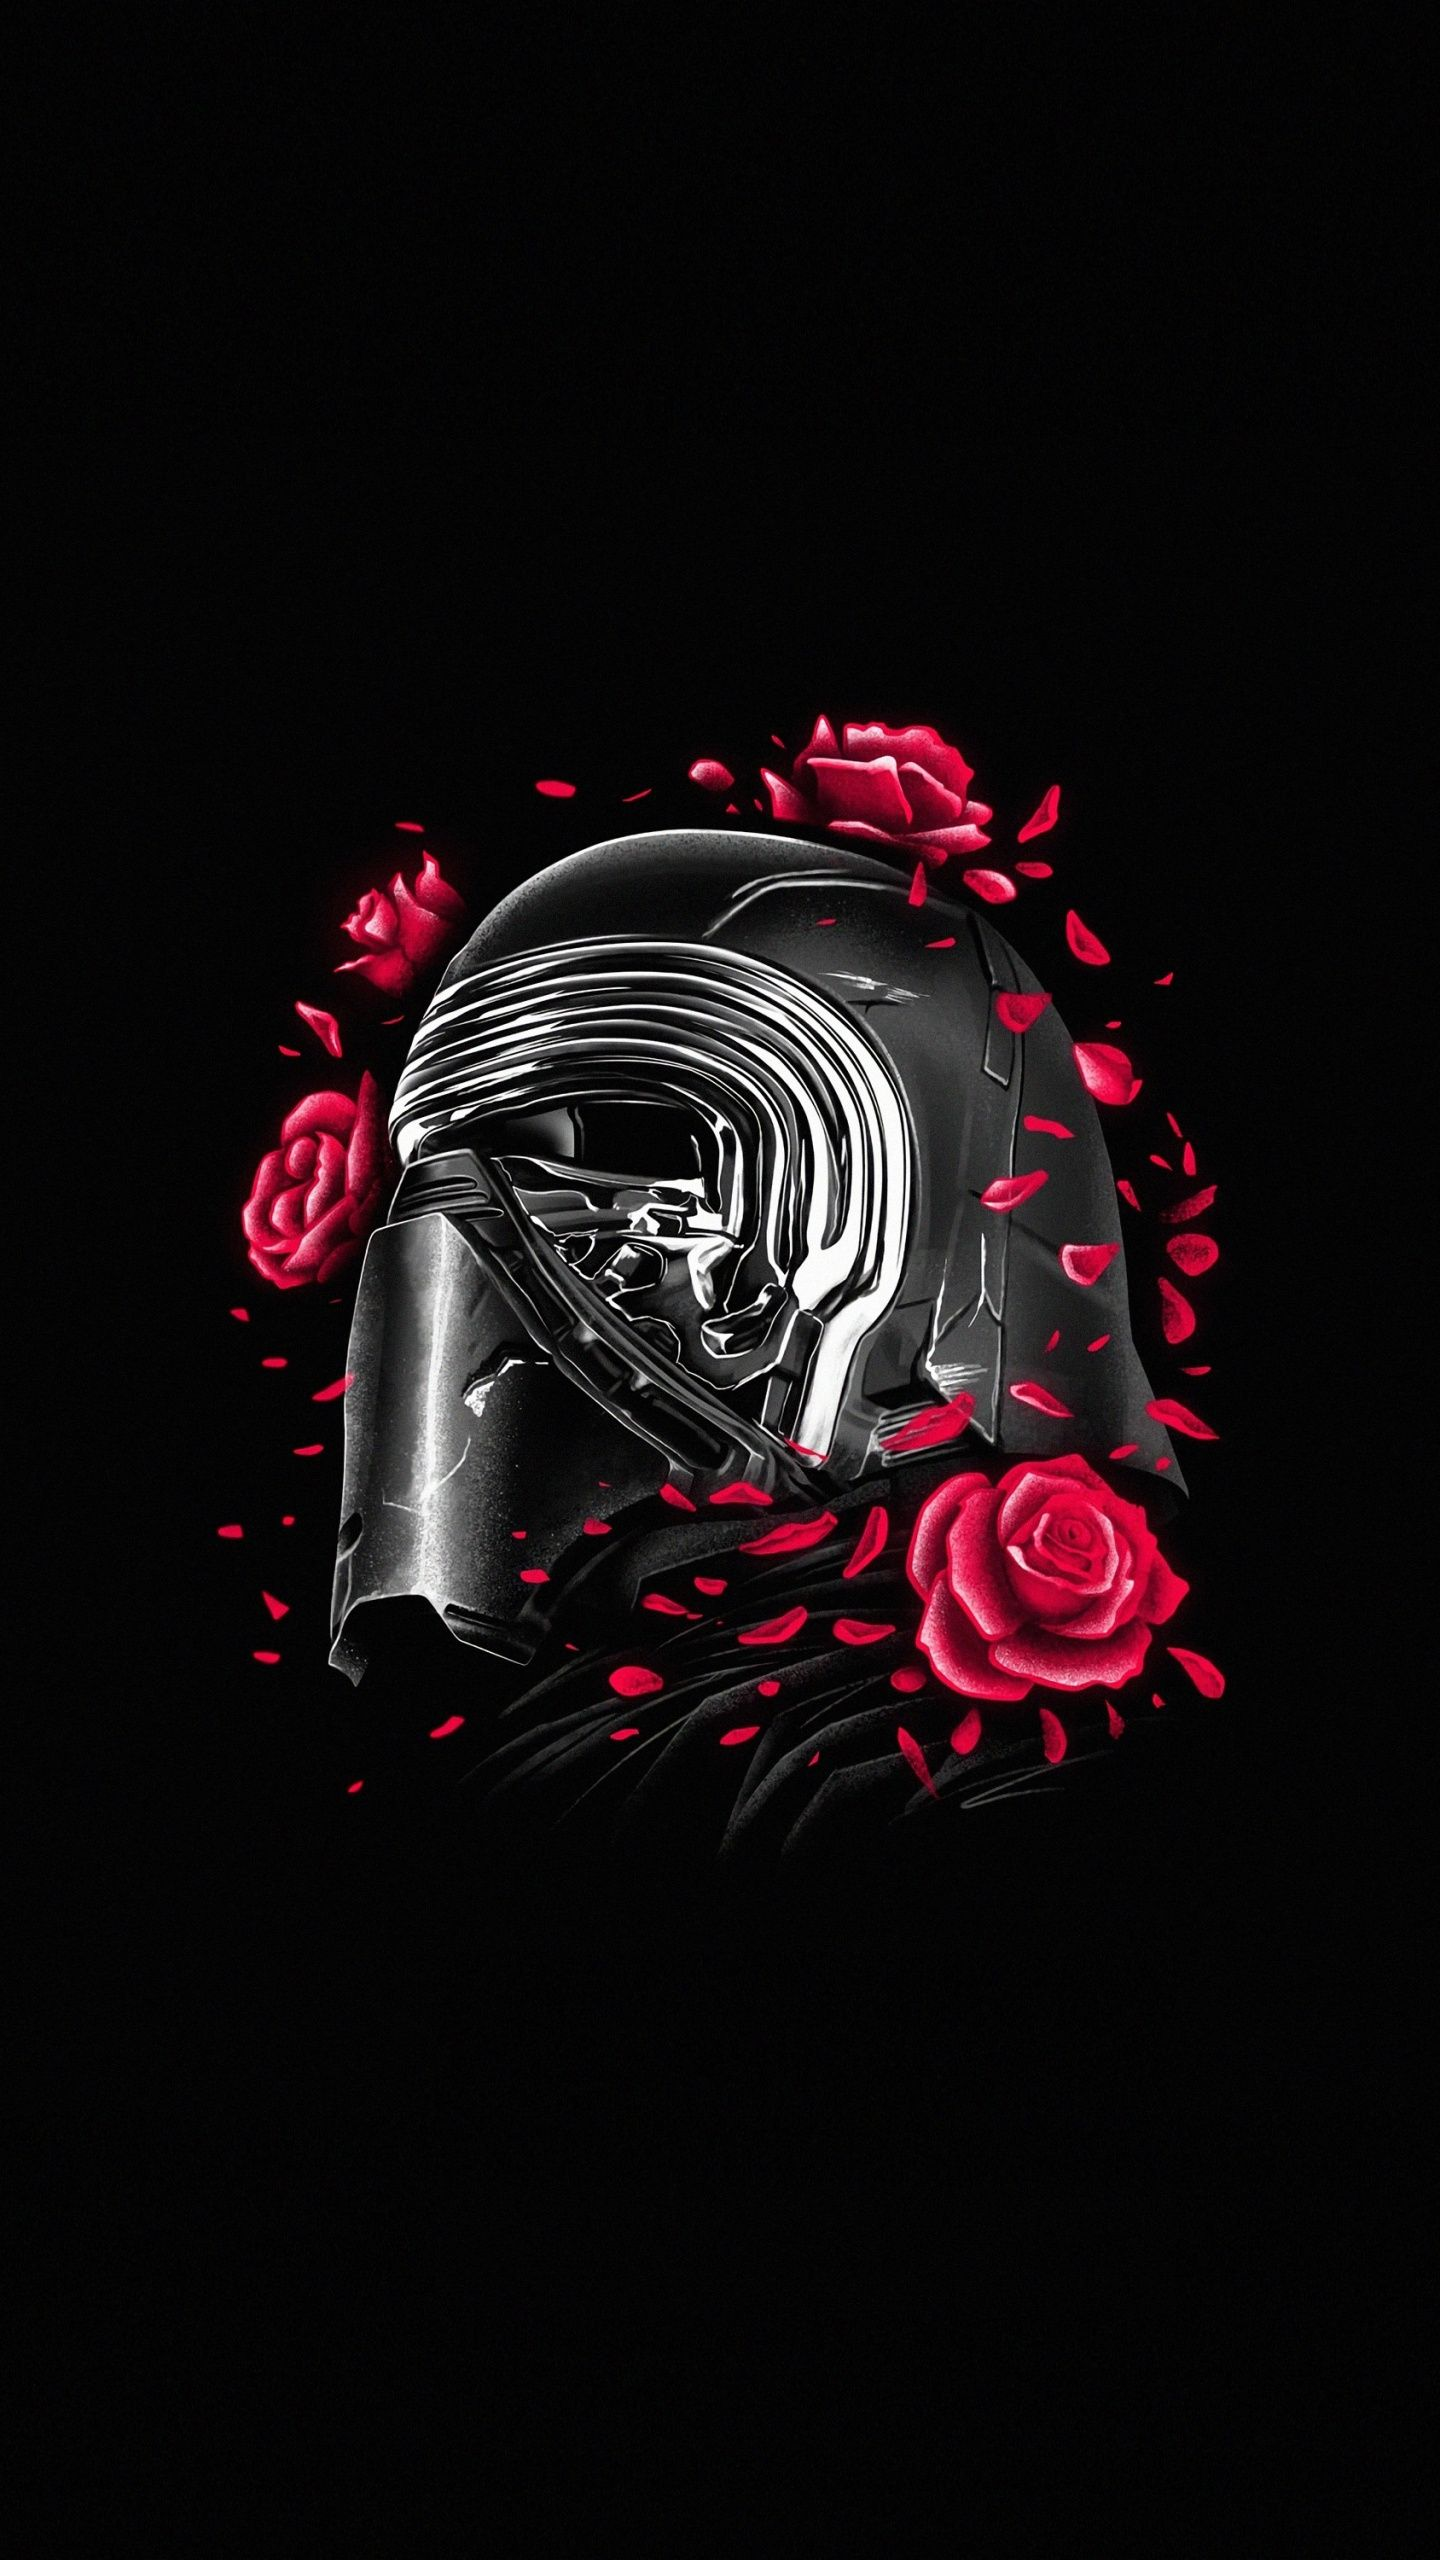 1440x2560 Kylo Ren, helmet and roses, Star Wars, minimal